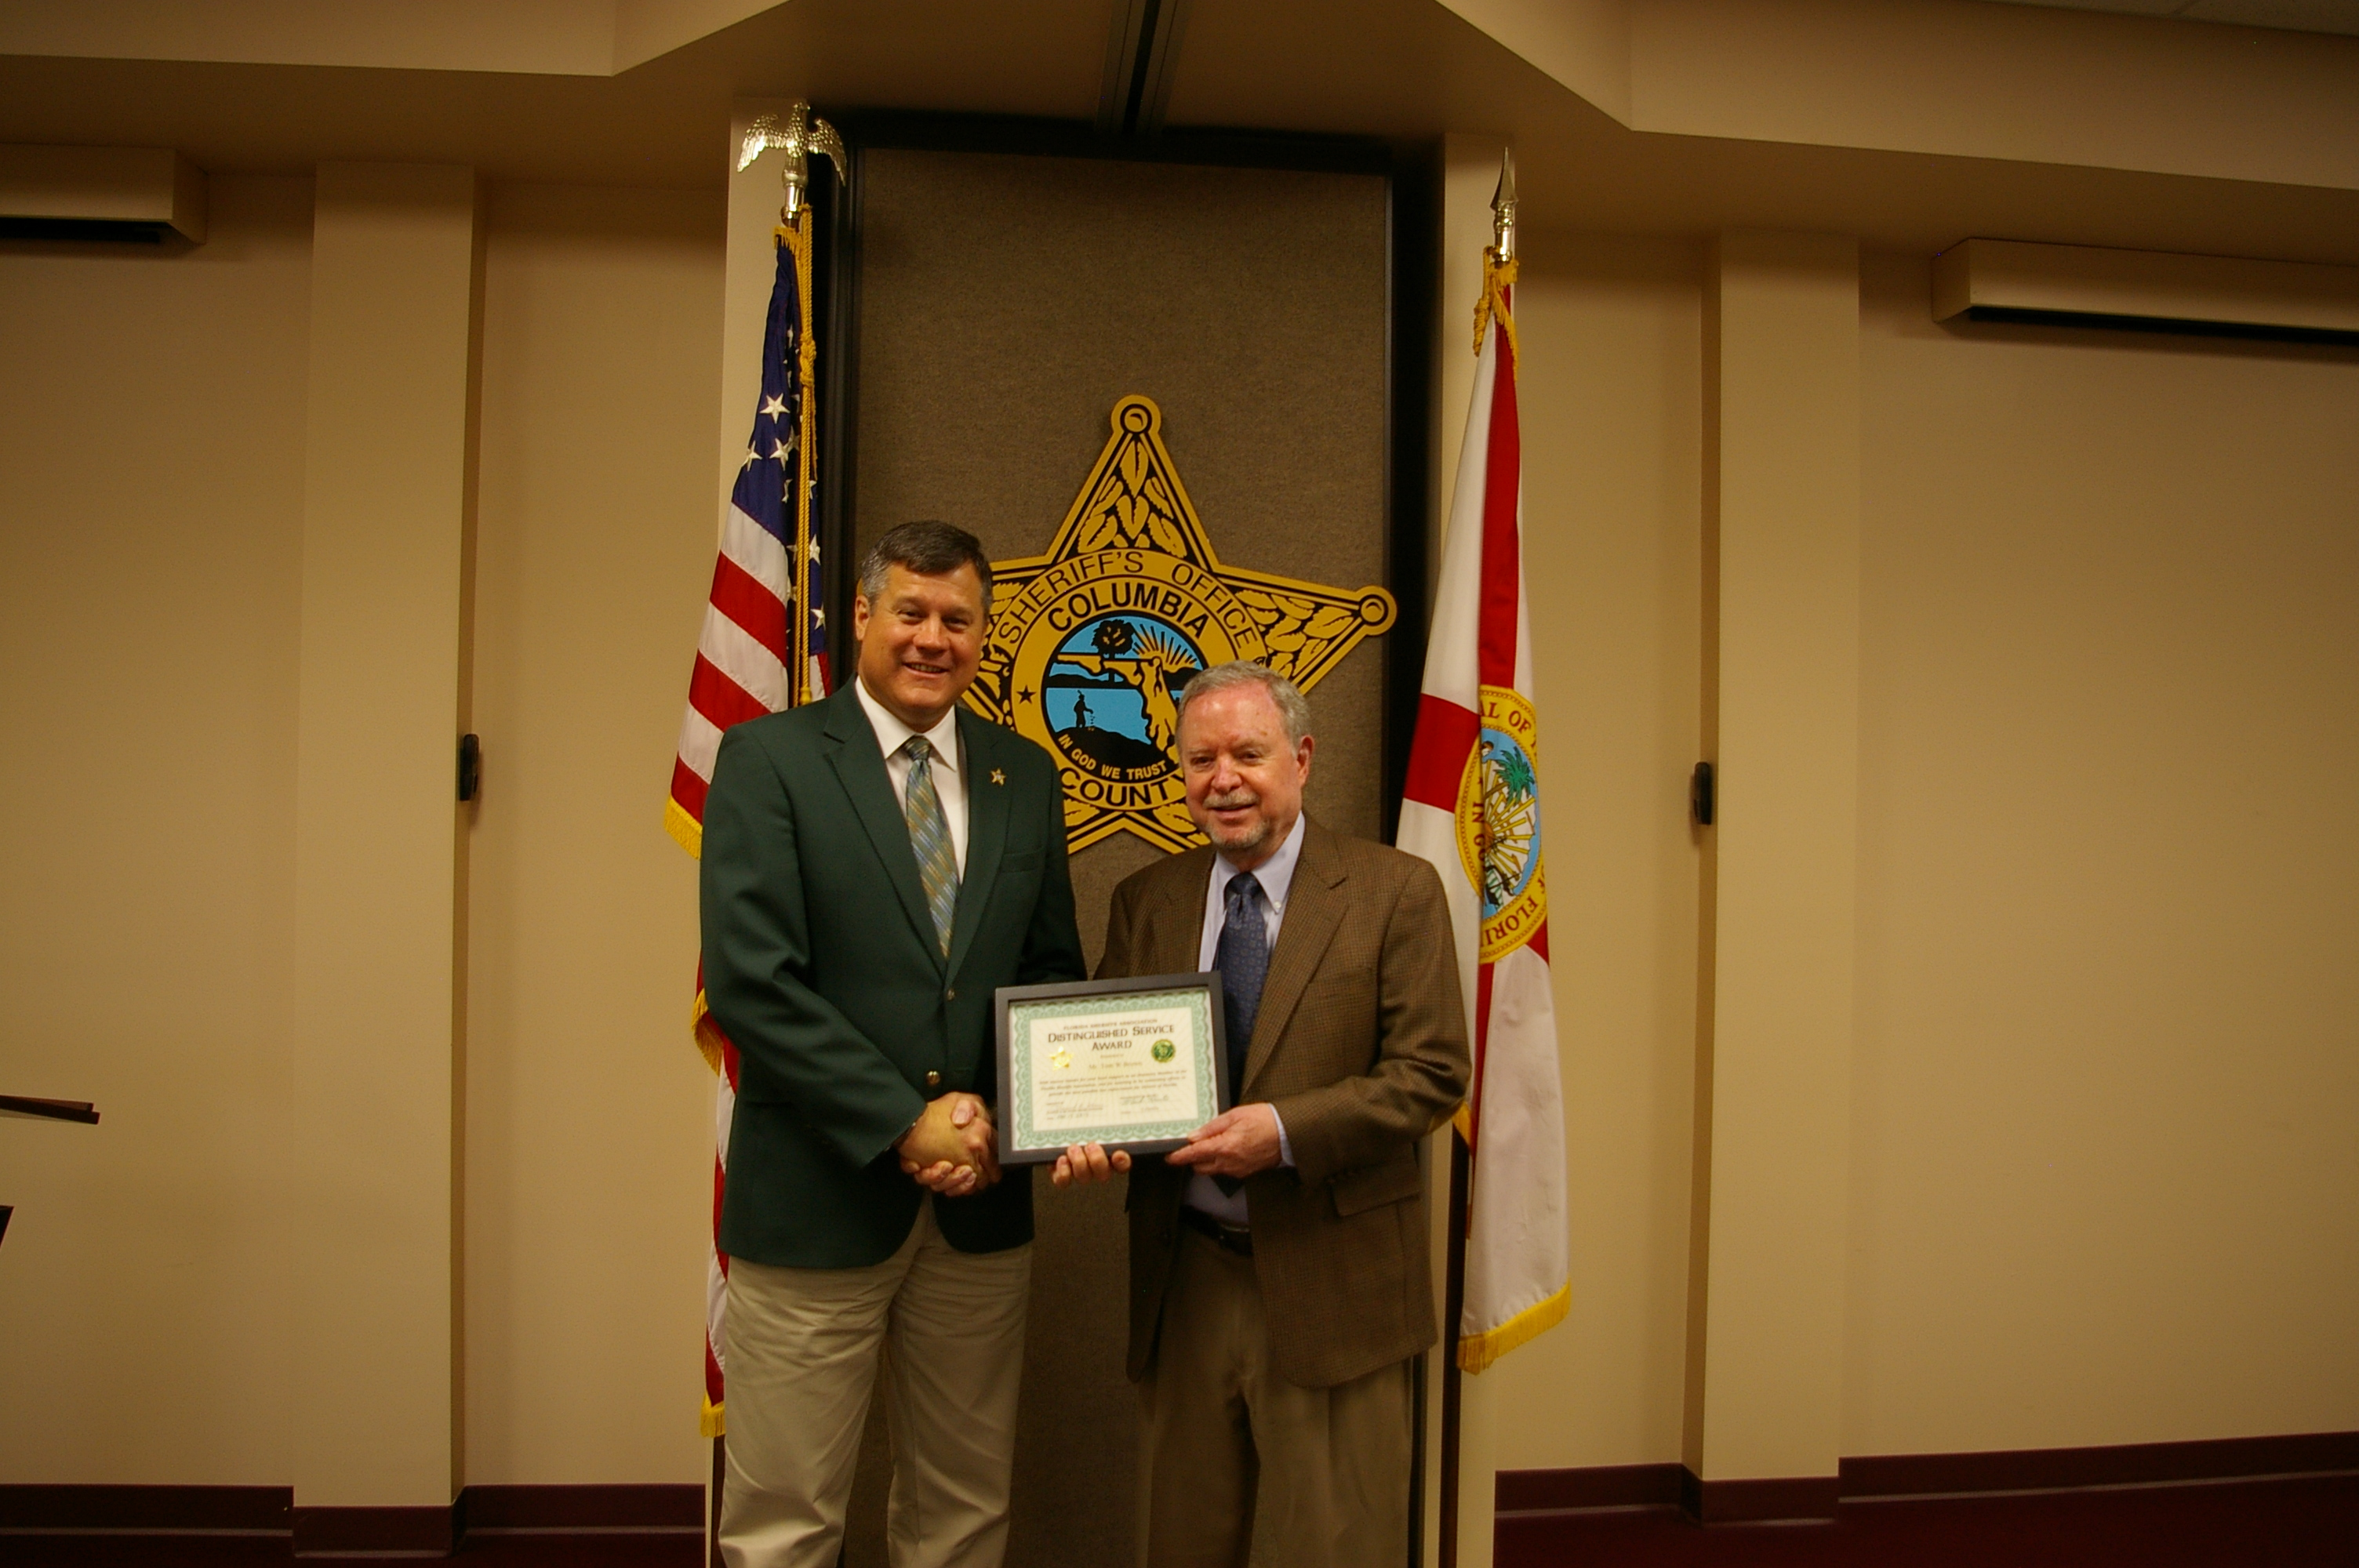 Sheriff Mark Hunter and Mr. Tom Brown